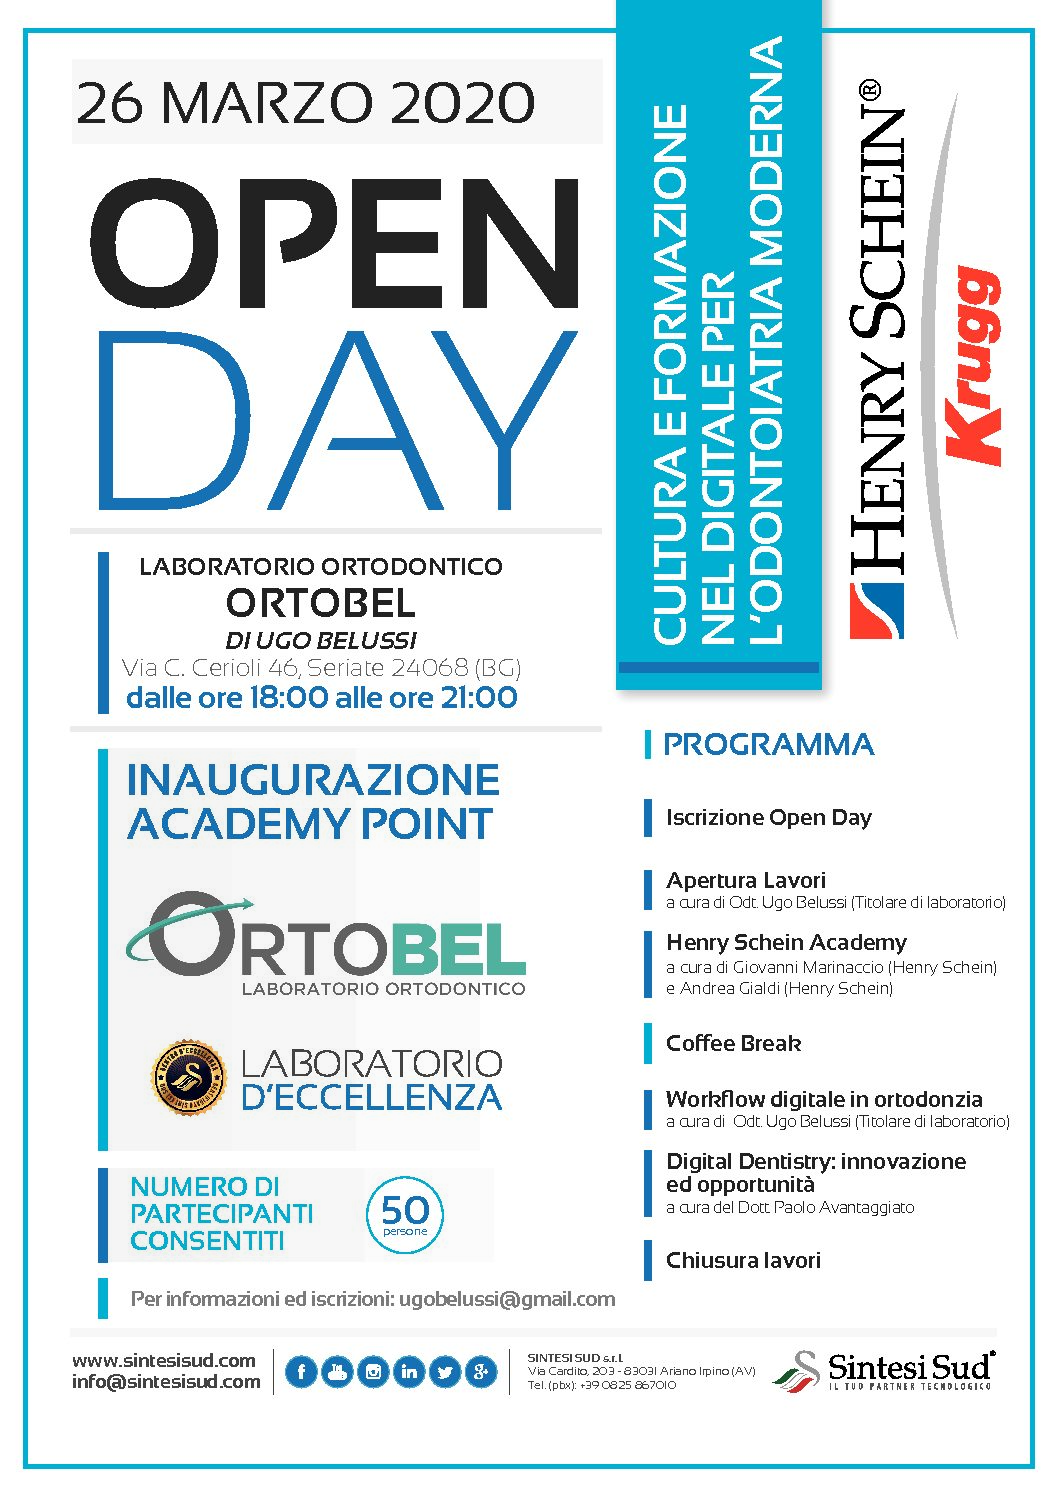 OPEN DAY 26 MARZO 2020 18-21